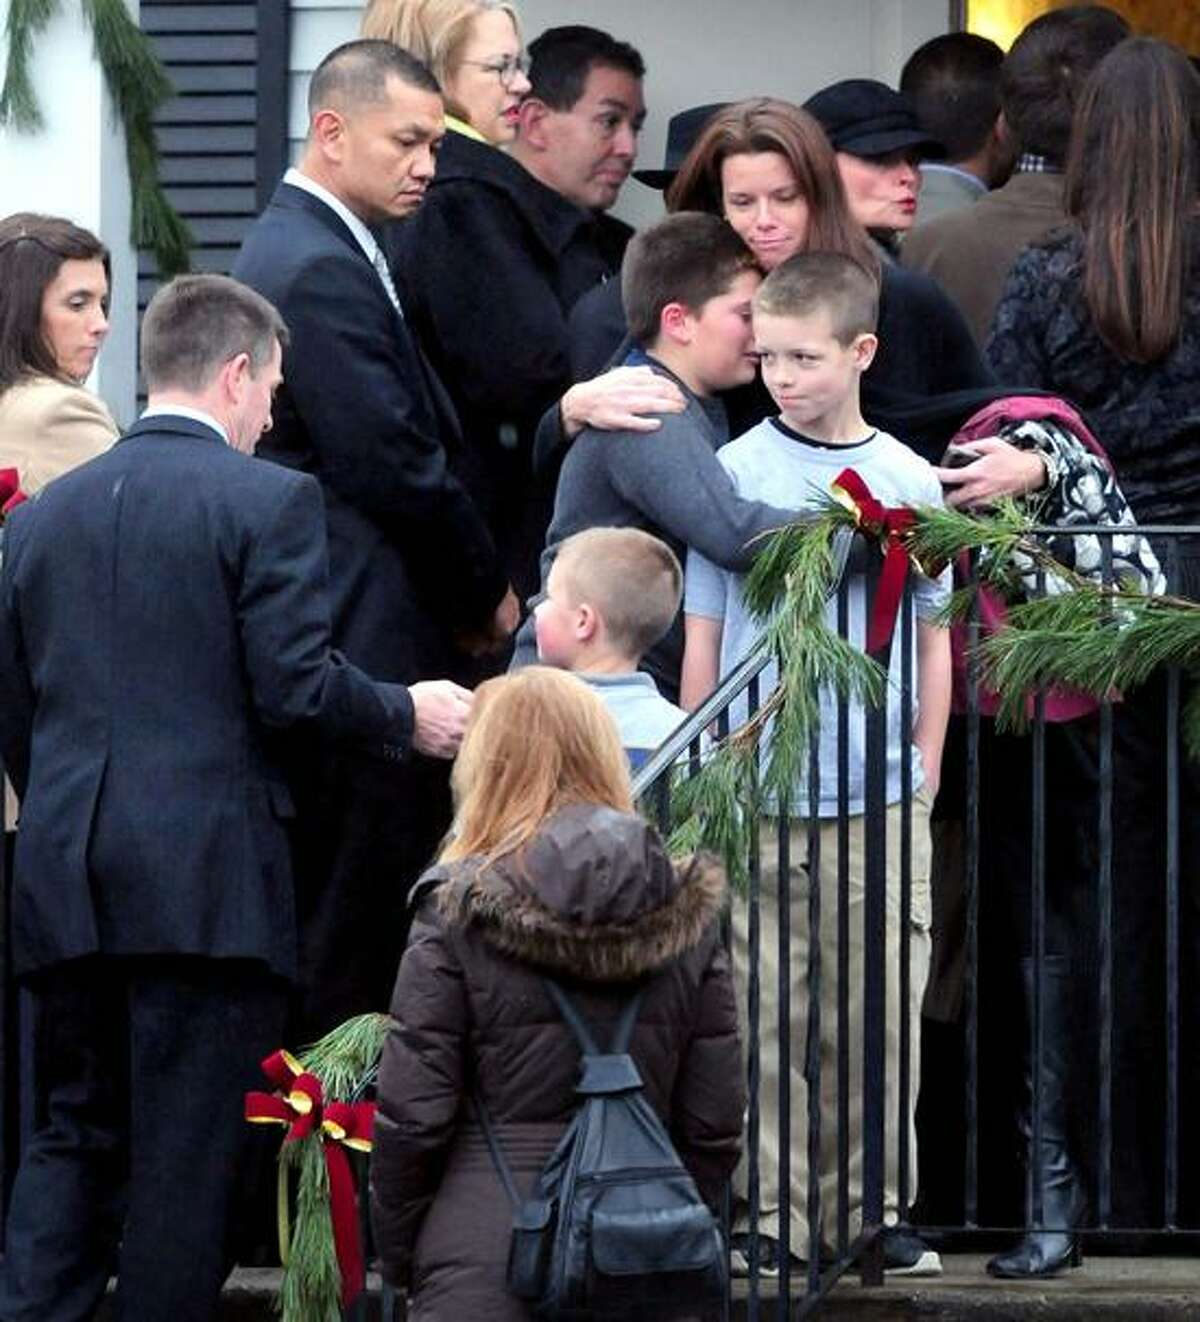 Mourners stand in line at the Honan Funeral Home in Newtown on 12/17/2012 for the funeral service of six-year-old Jack Pinto, a victim of the Sandy Hook Elementary School shootings.Photo by Arnold Gold/New Haven Register